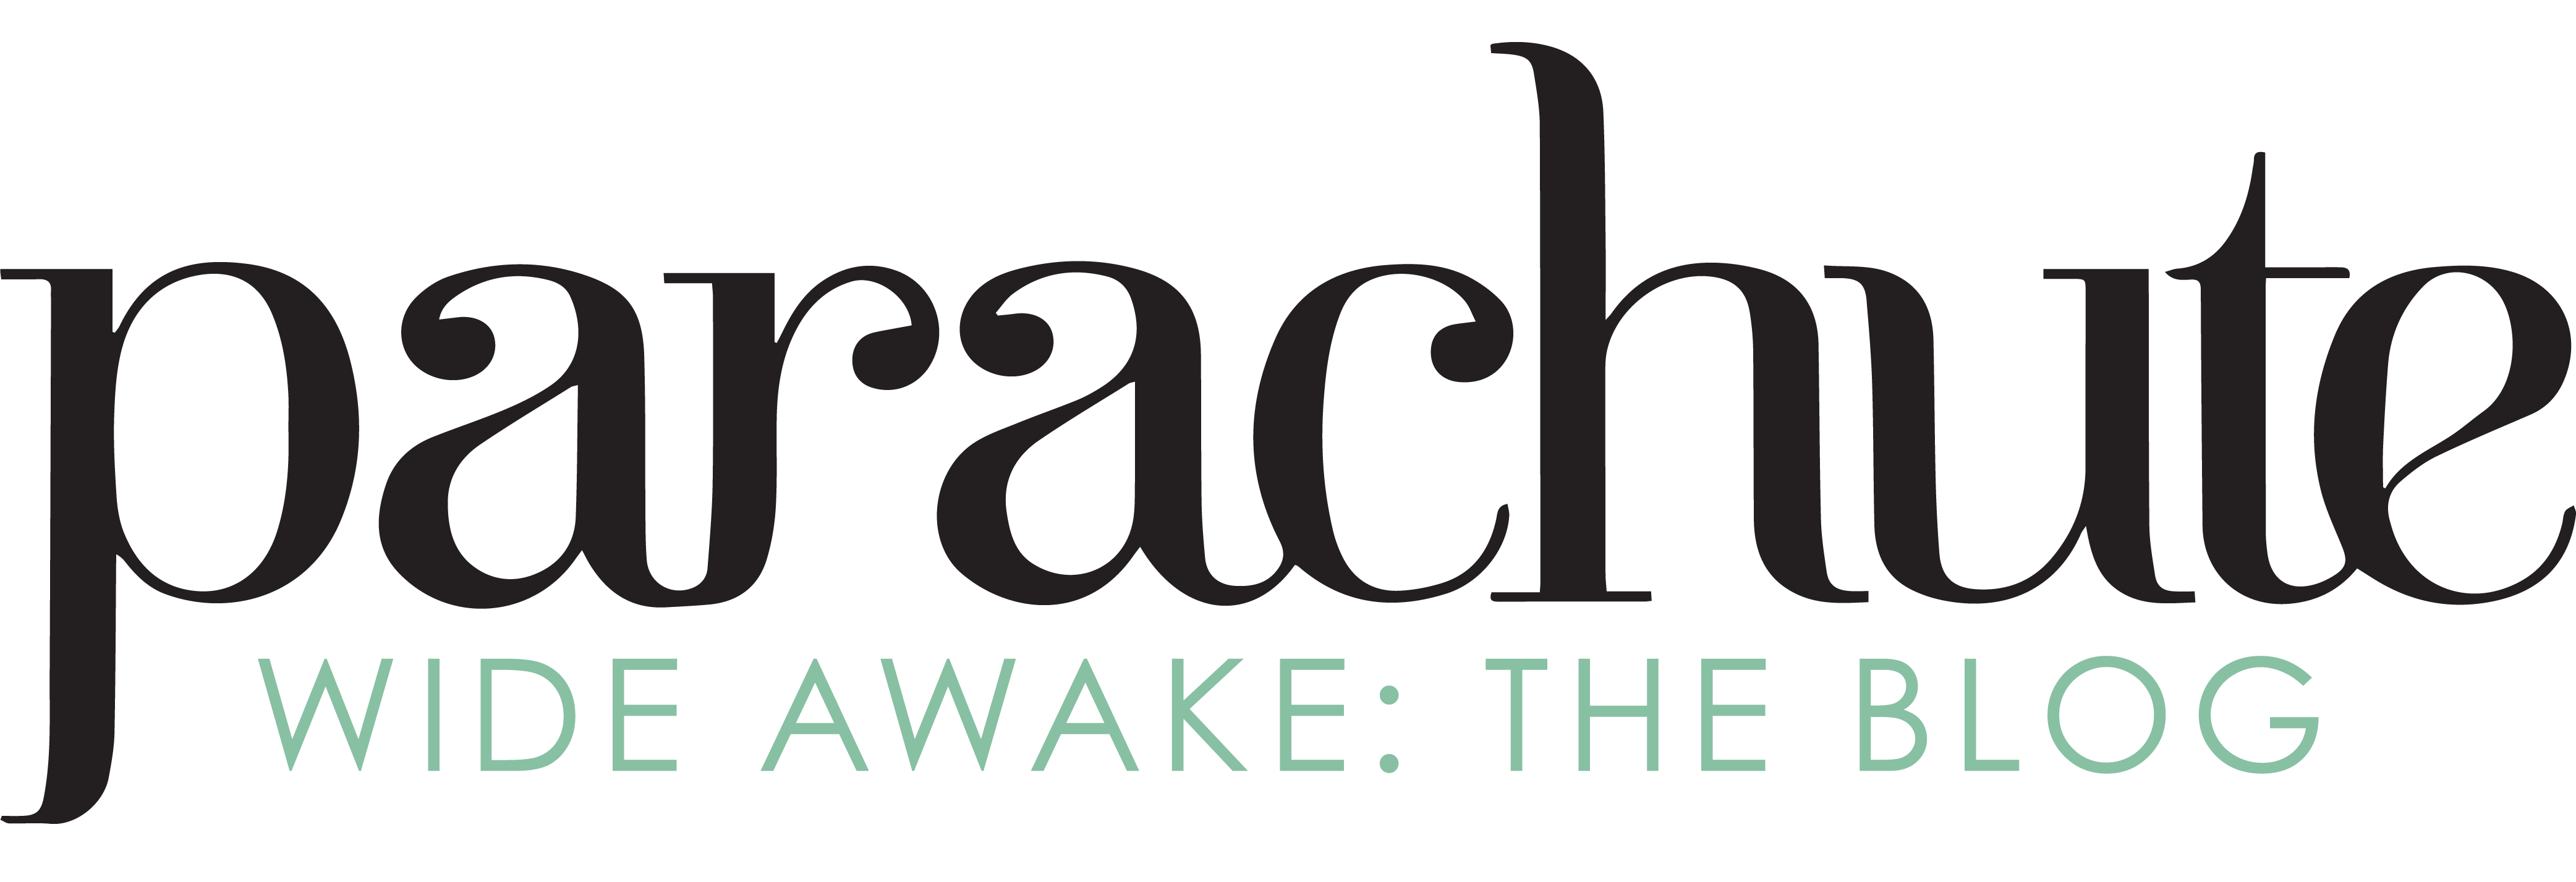 Wide Awake: The Blog - Wide Awake In Bed PNG